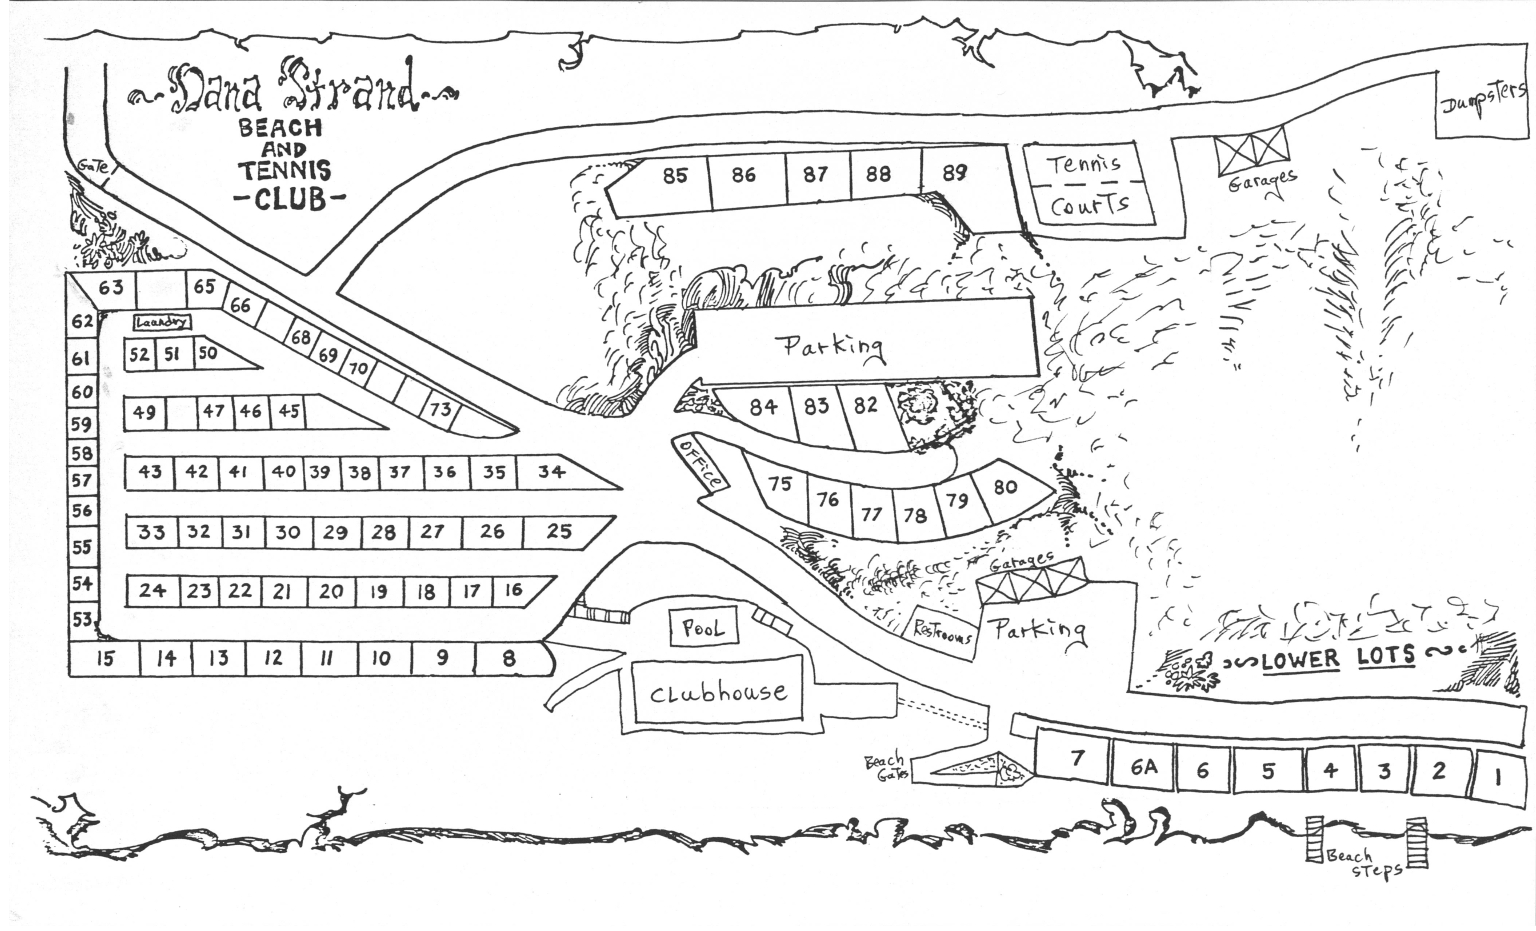 Map of the Dana Strand Beach and Tennis Club showing the location of trailer lots and community services.